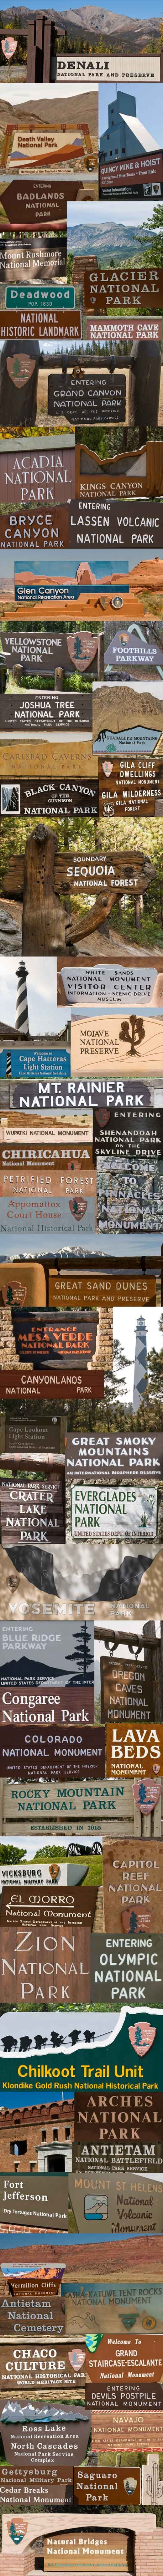 For National Parks week here's some NPS inspiration... a collage of parks signs of 68 of the 123 NPS sites we've visited on our Journey.: Nps Parks, Parks Signs Someday, Buckets Lists, American Travel, Outdoor, National Parks Signs, Us National Parks, Travel Posters, Nps Signage